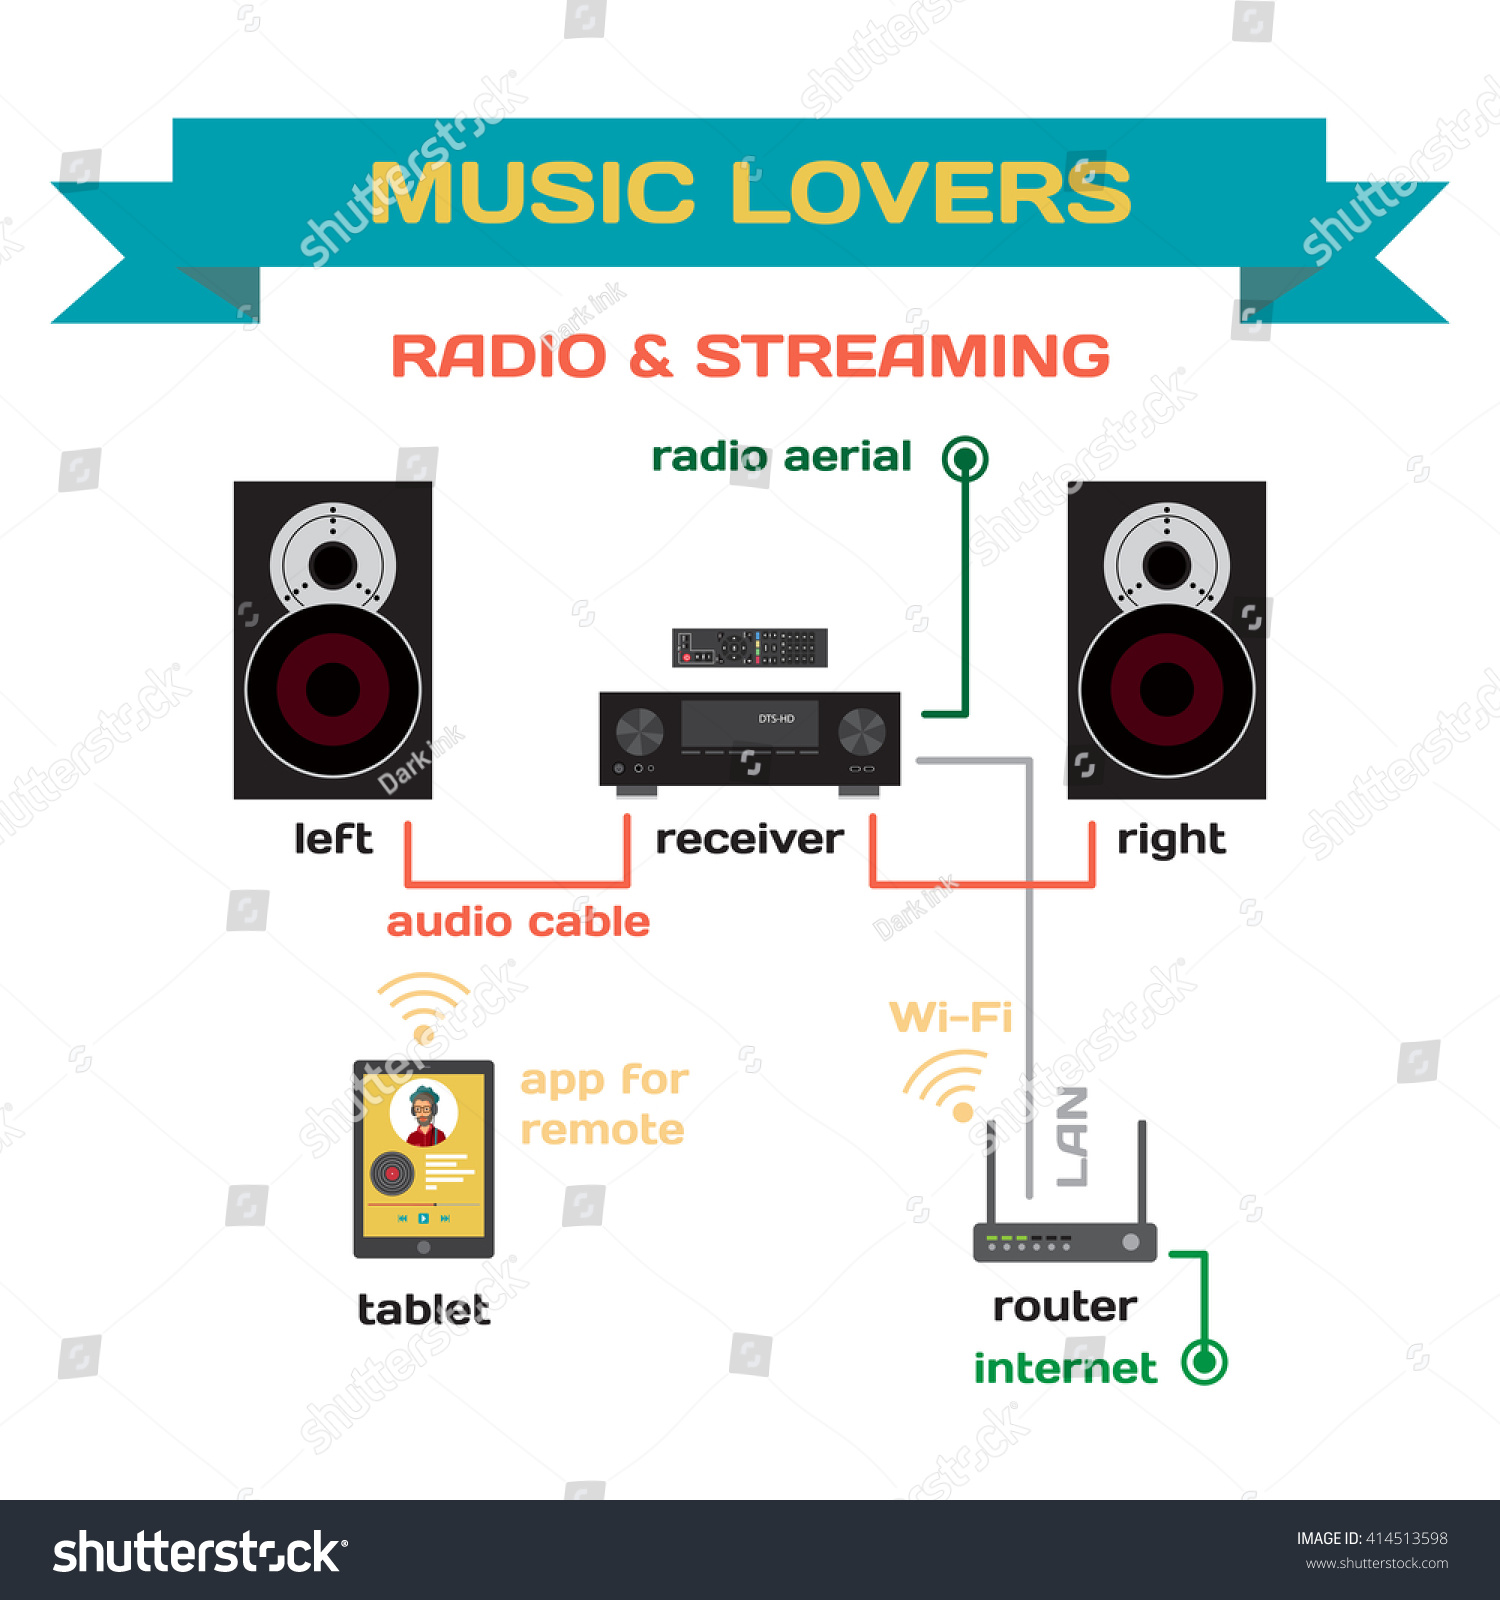 Wiring a music system for analog radio and streaming music flat design.  Connect the receiver